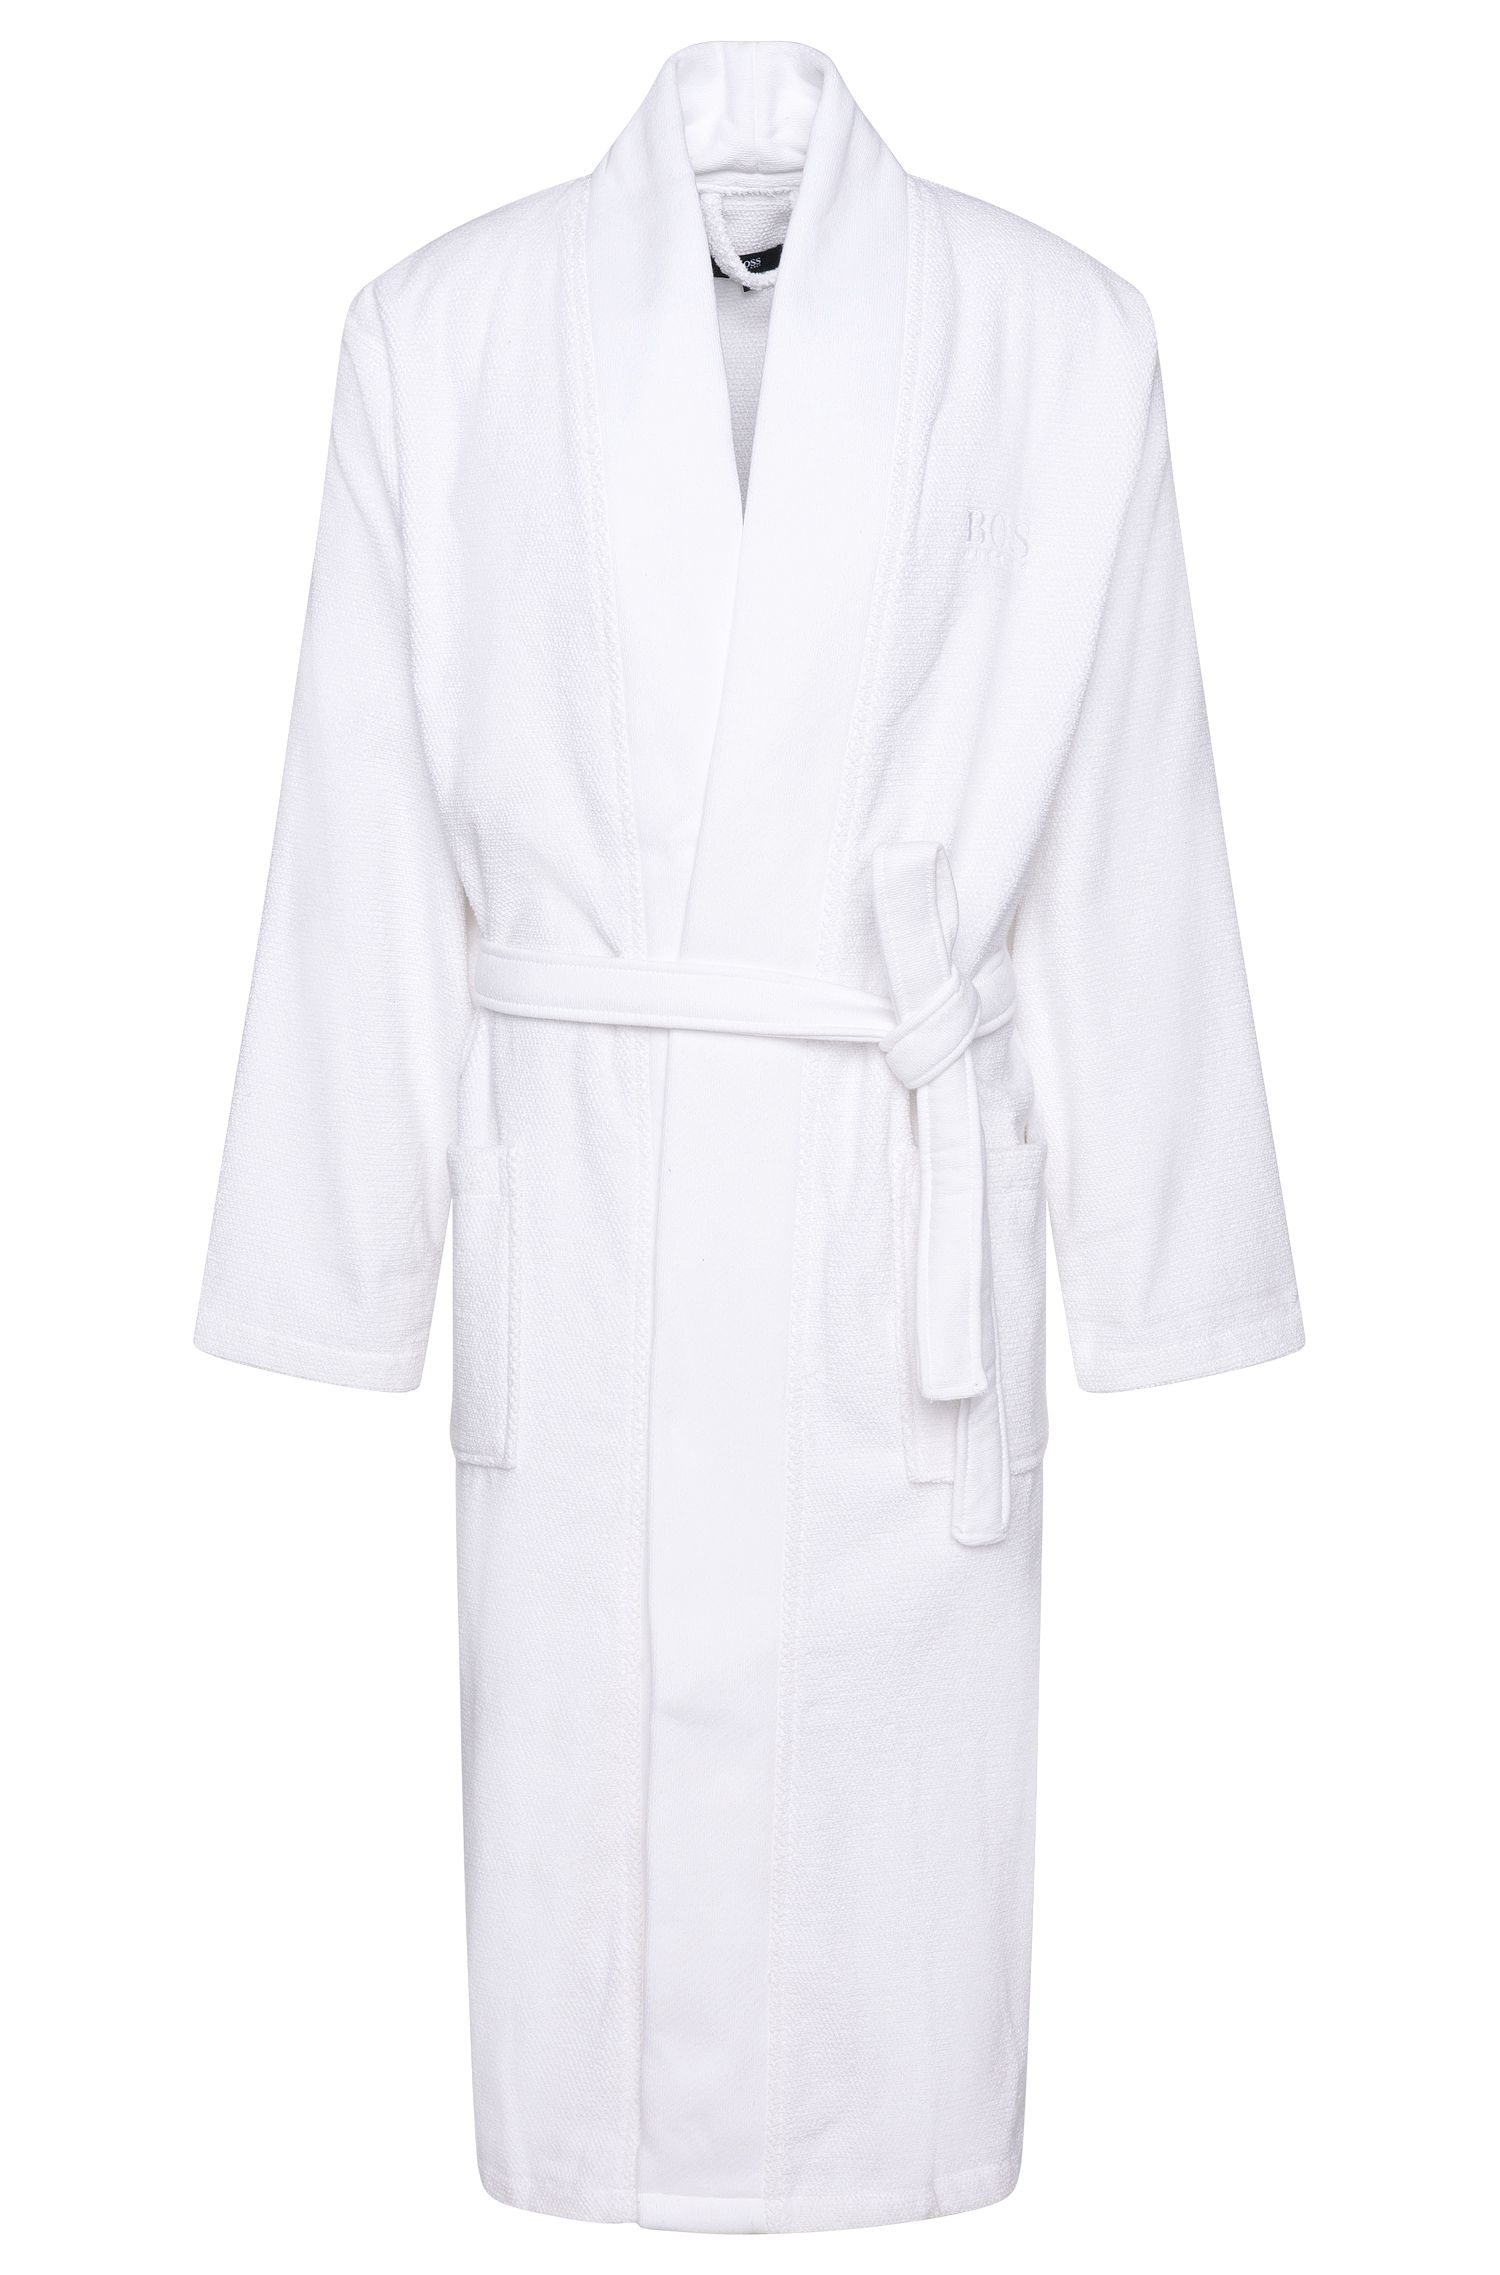 Kimono-style bathrobe in combed Aegean cotton